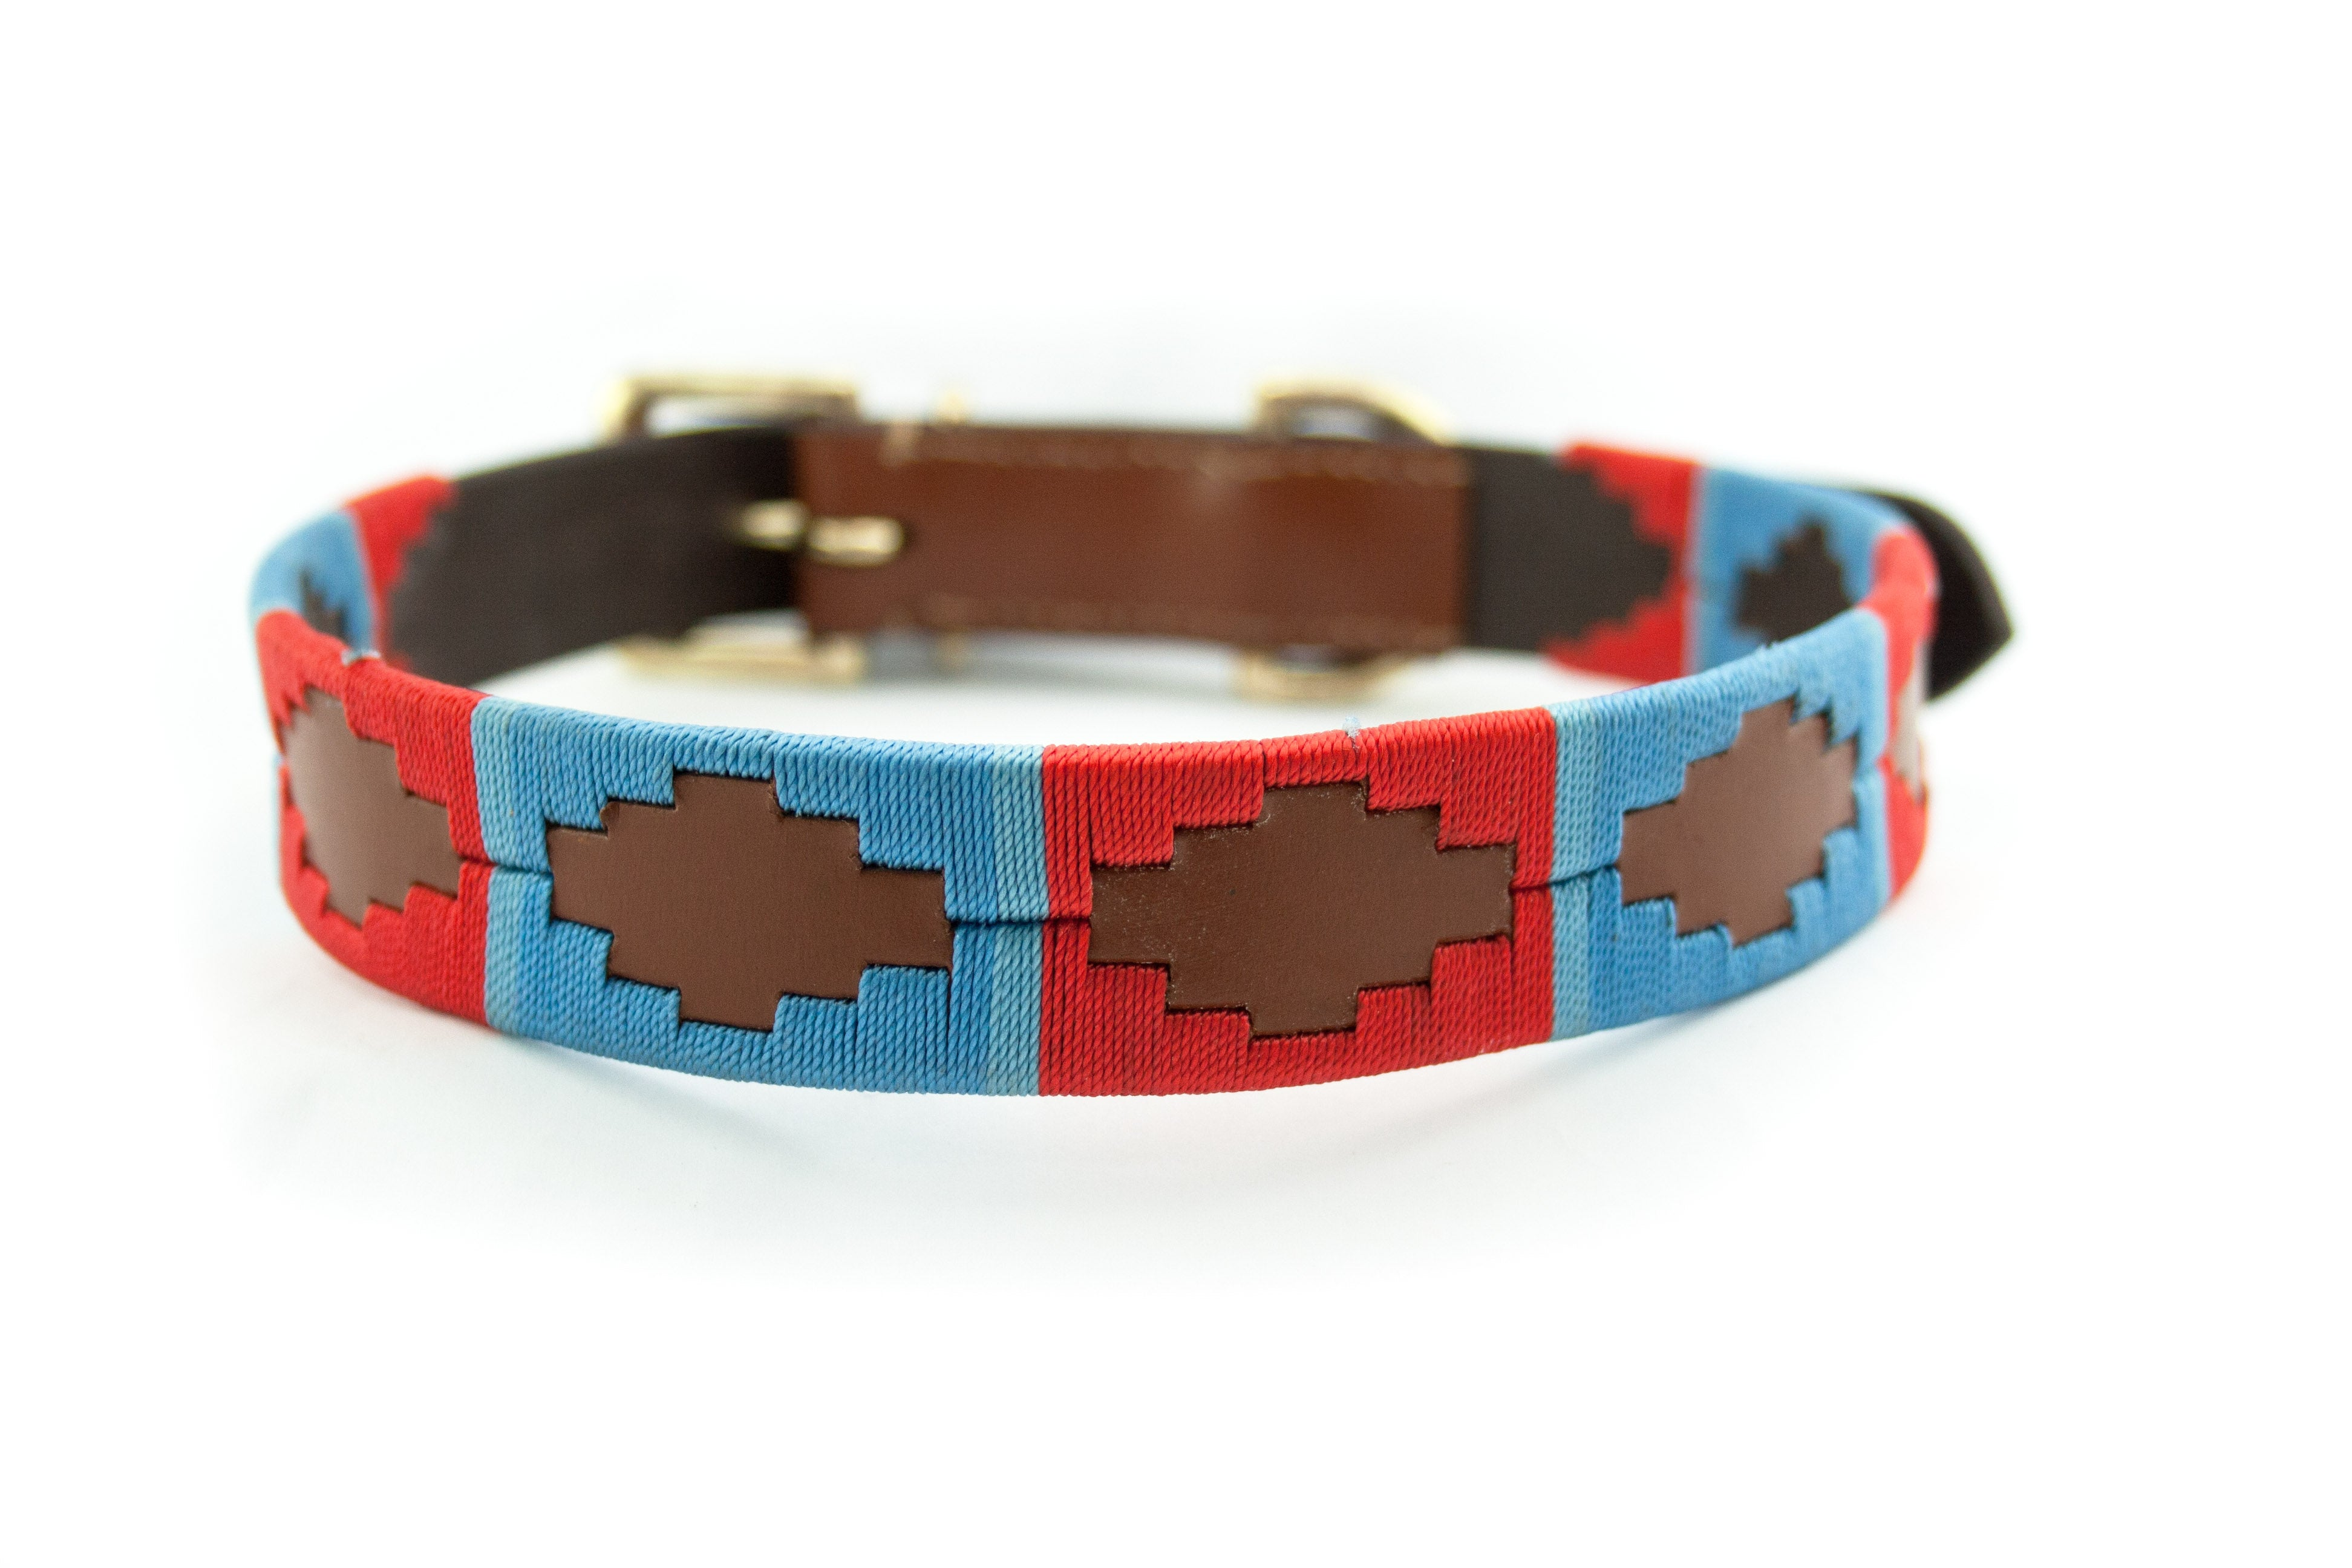 Leather 'GAUCHO-POLO' Style Dog Collar RED BLUE